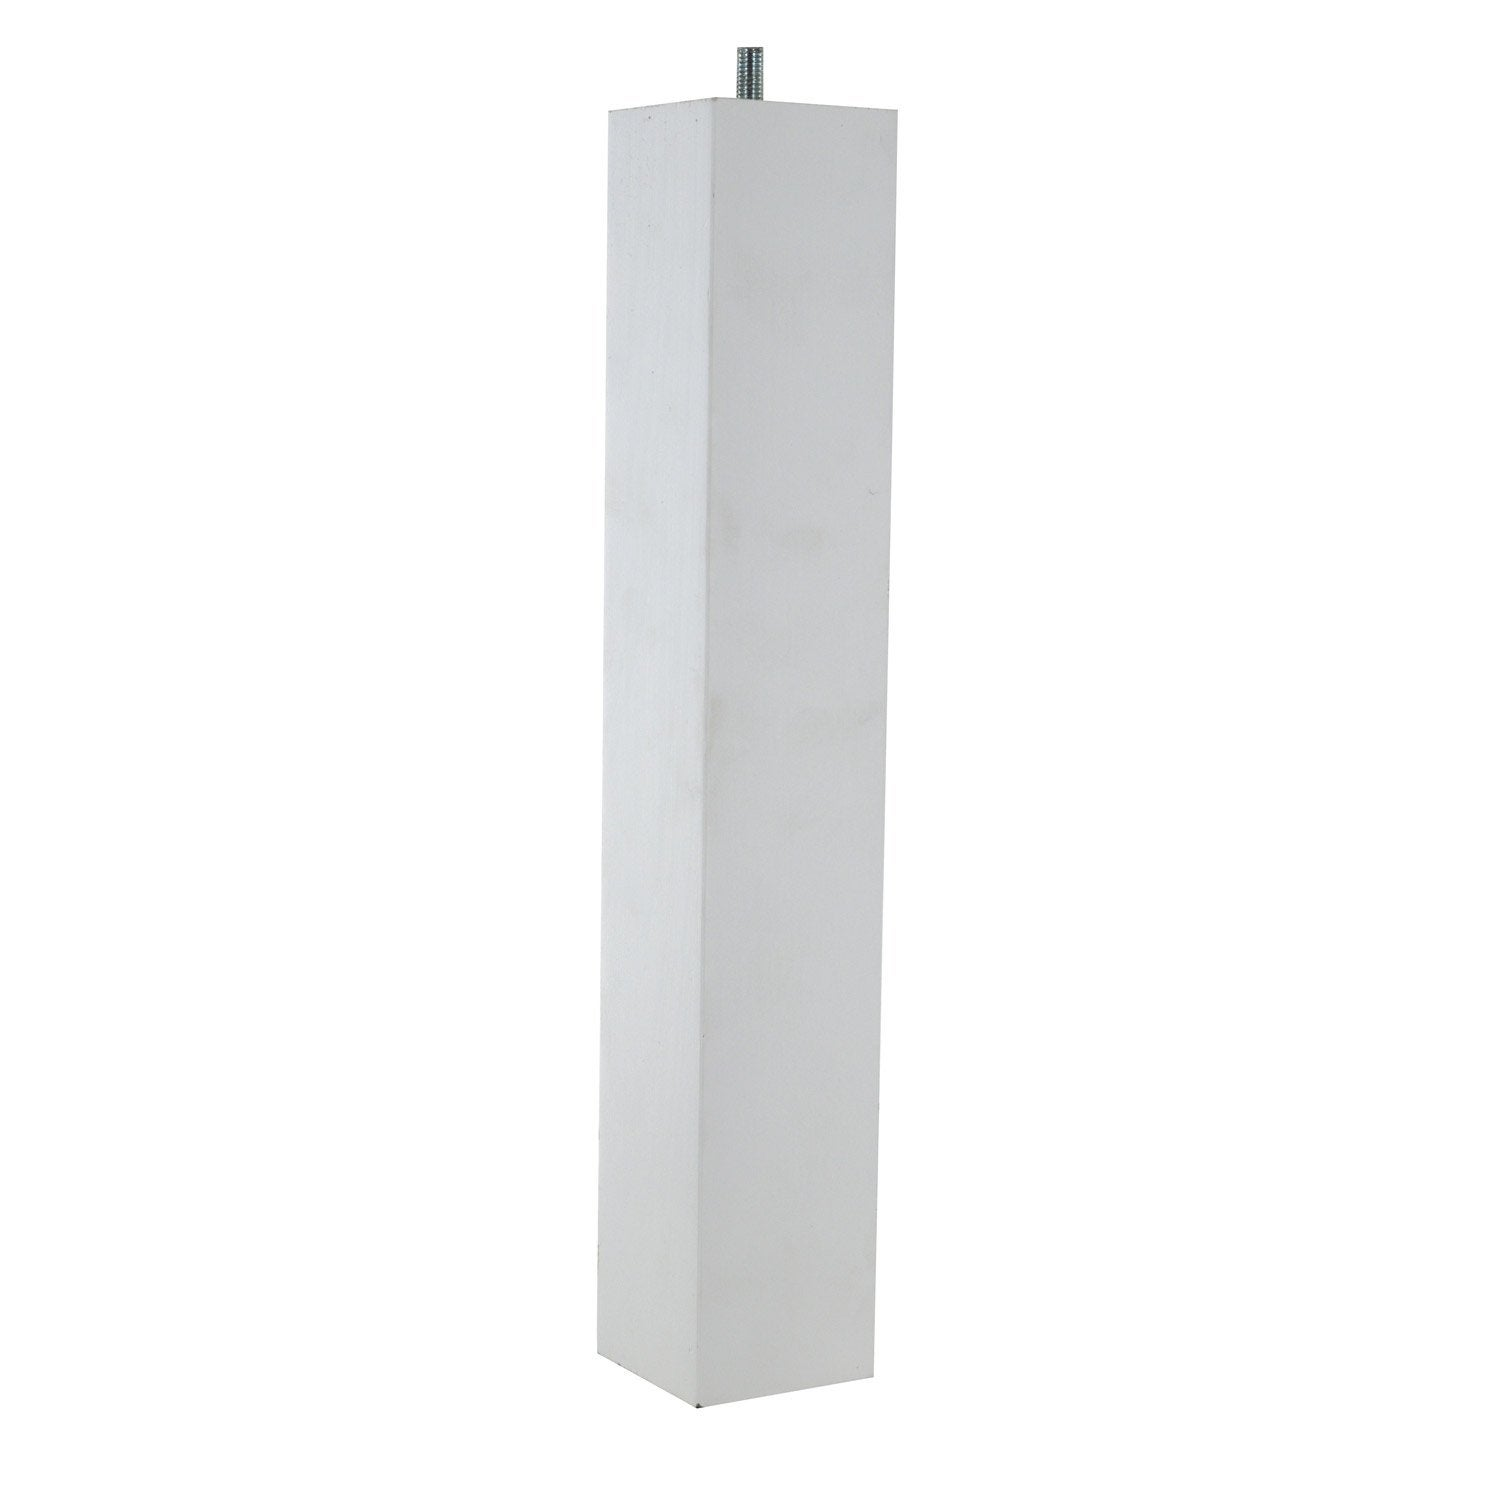 Pied de table basse carr fixe h tre laqu blanc 36 cm leroy merlin - Leroy merlin pied de table ...